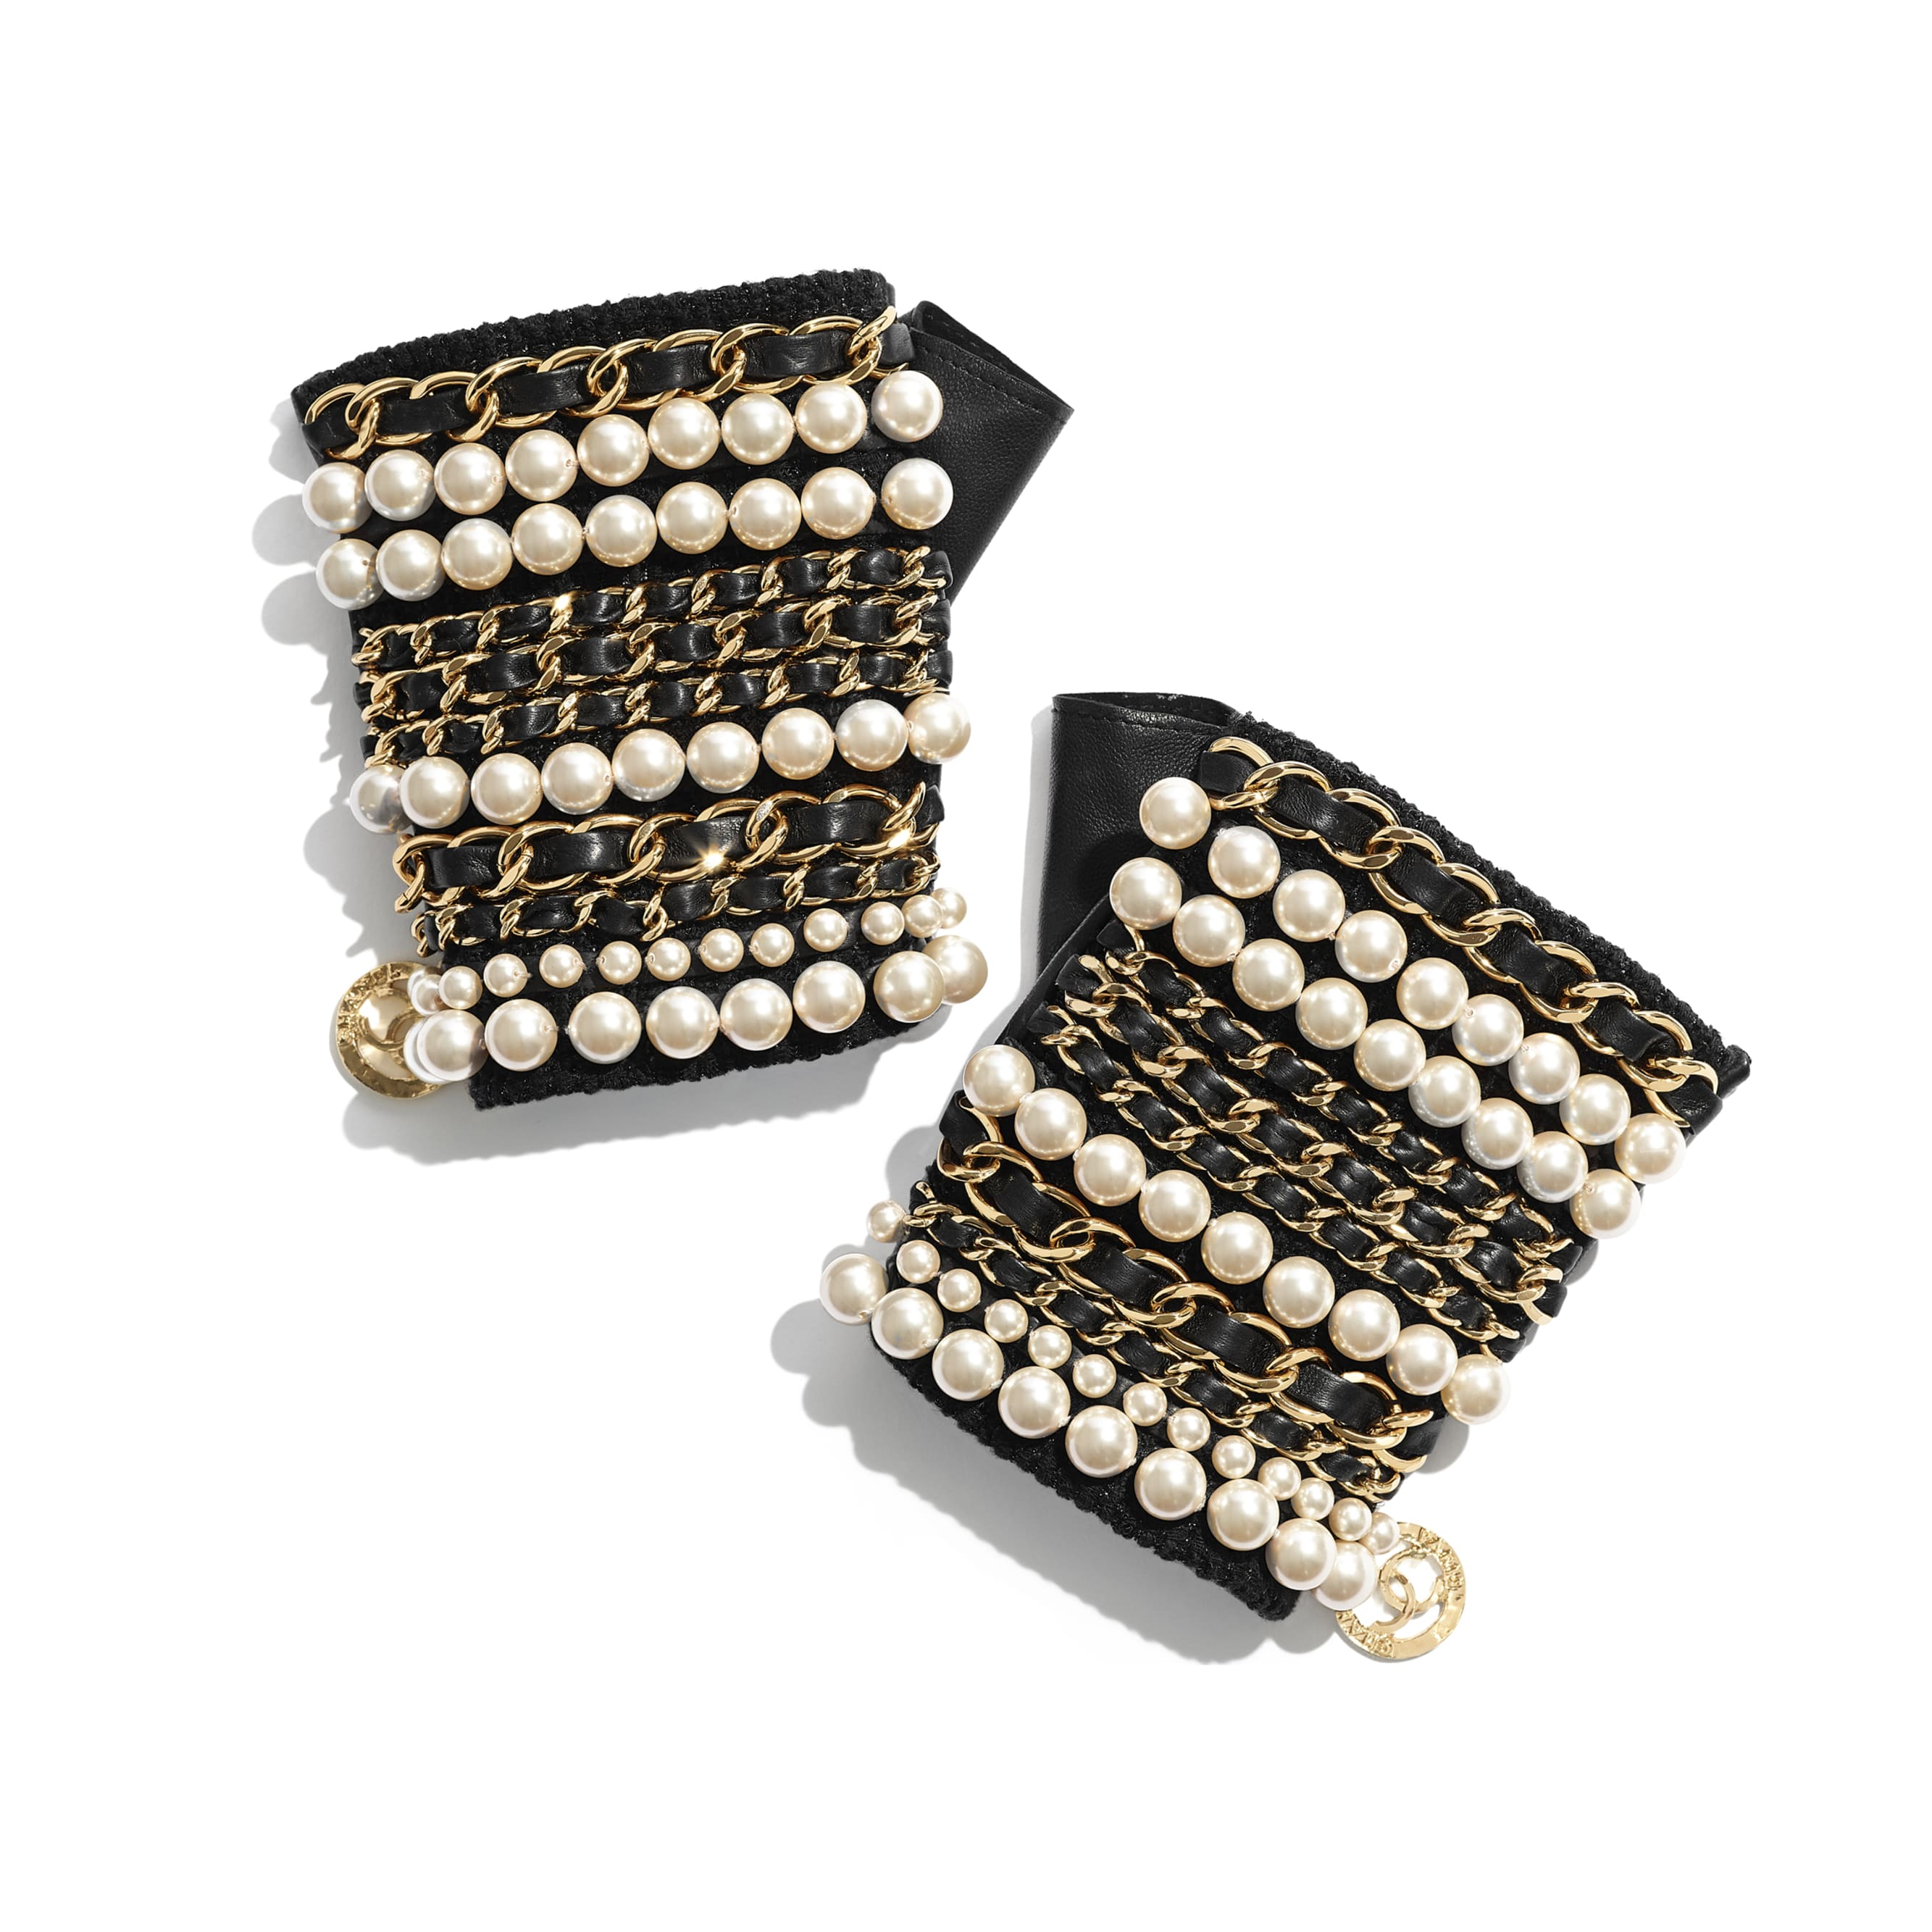 Gloves - Black & Pearly White - Lambskin, Glass Pearls & Gold-Tone Metal - CHANEL - Default view - see standard sized version